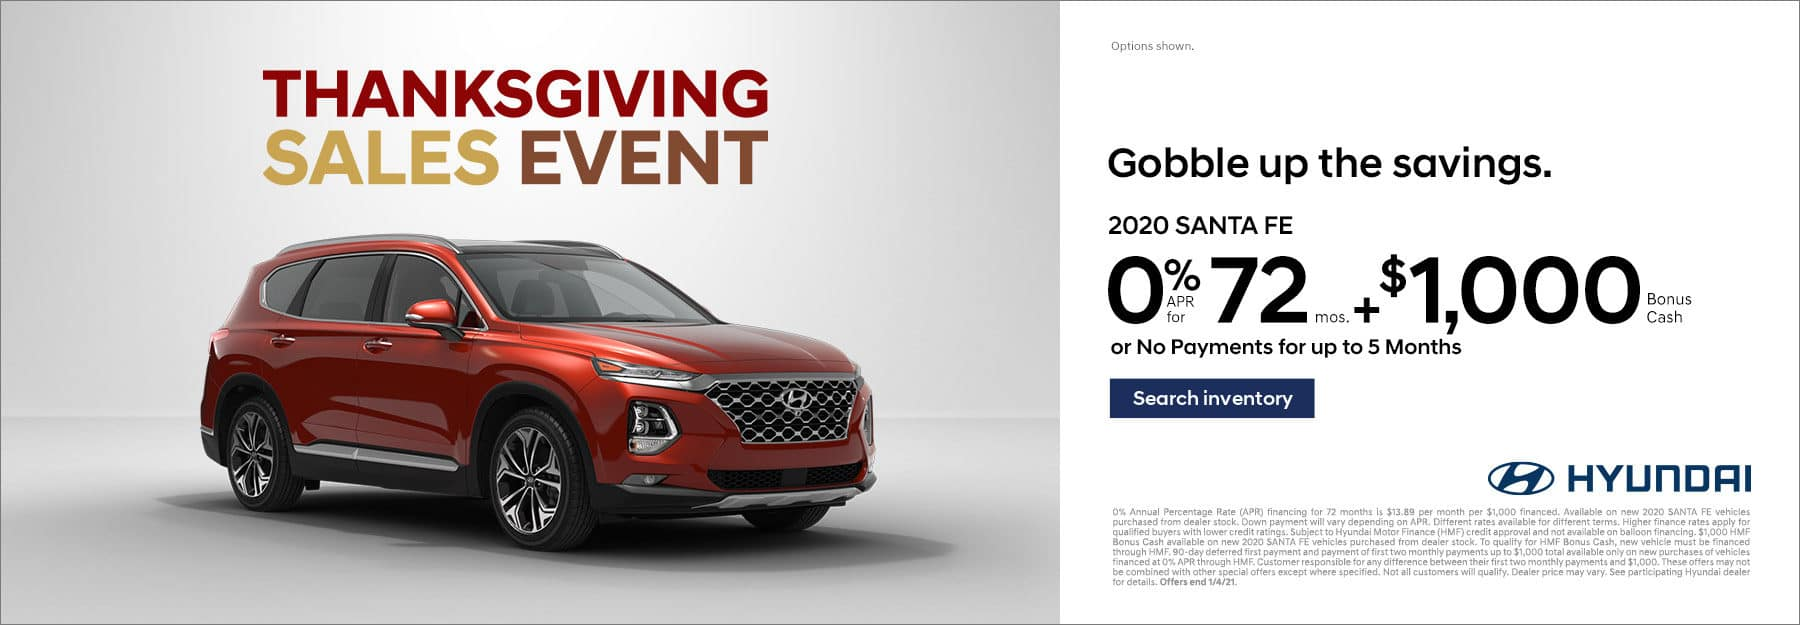 Hyundai Central Region Thanksgiving Sales Event